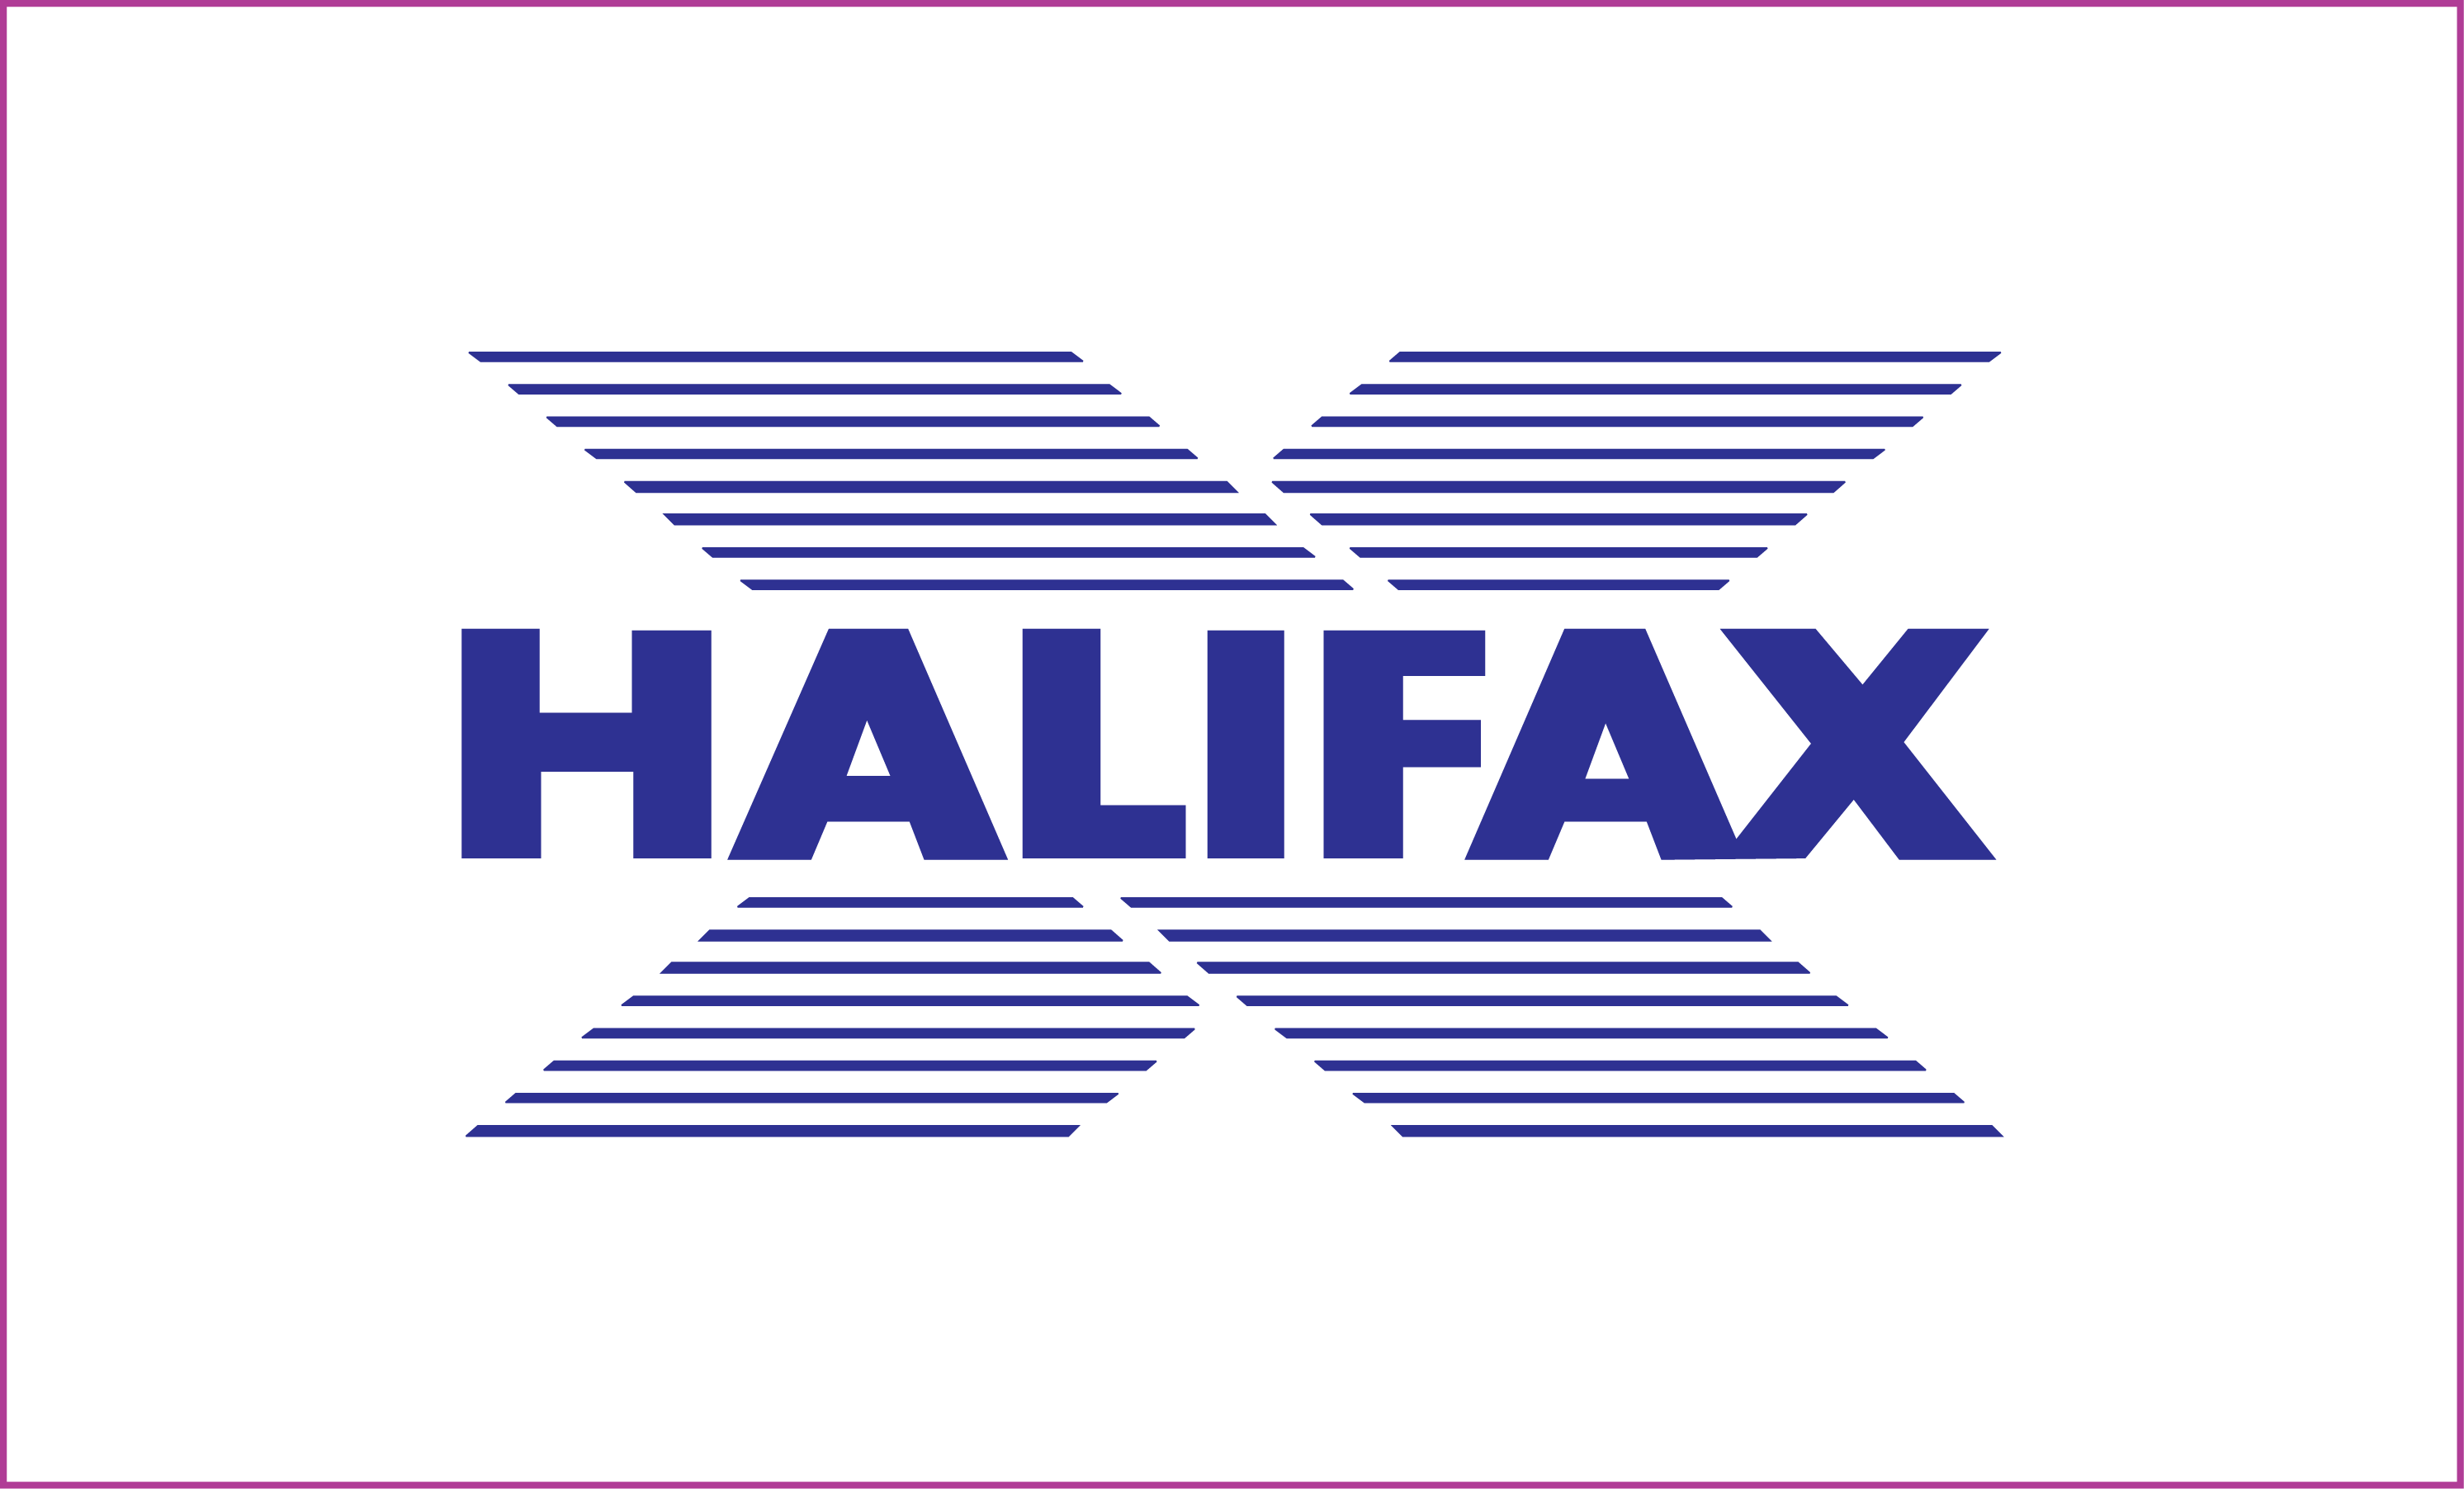 Halifax Replica Statement